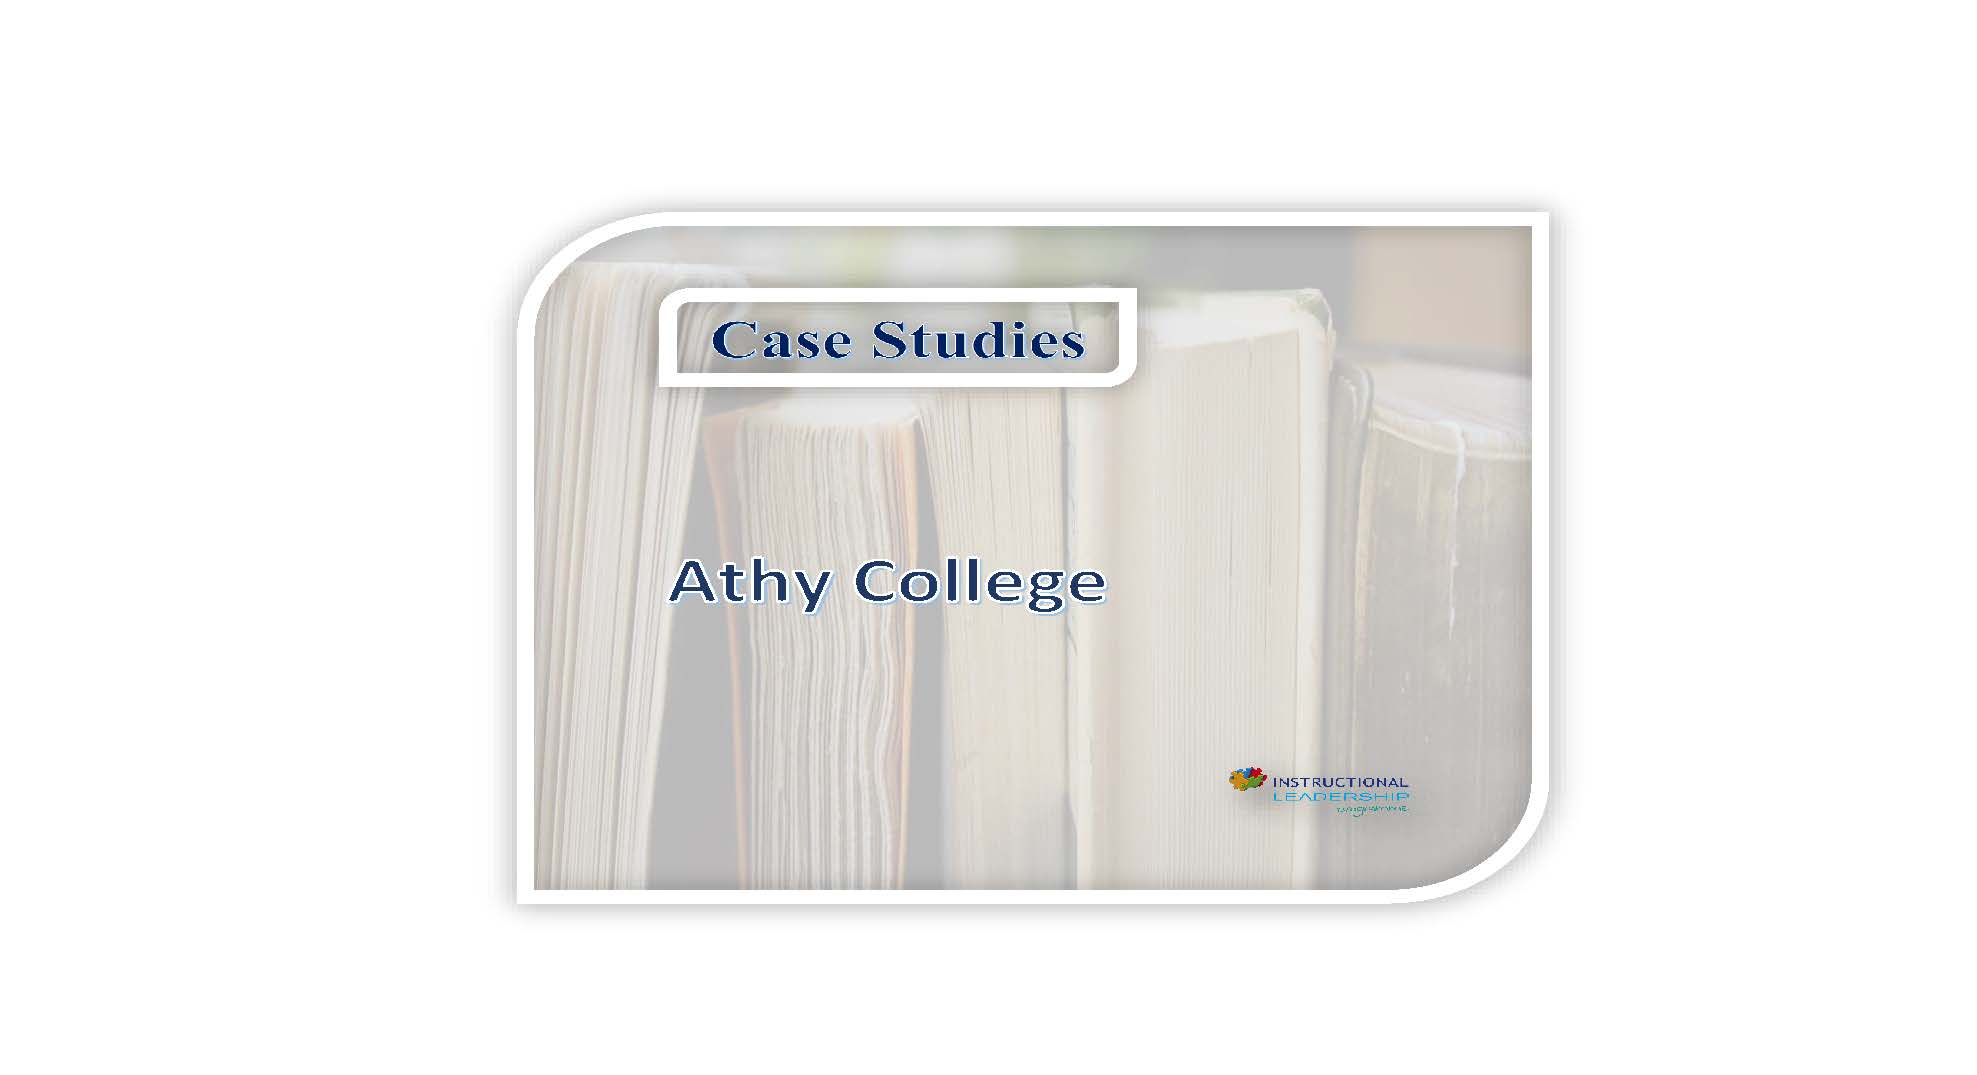 Case Studies – Athy College